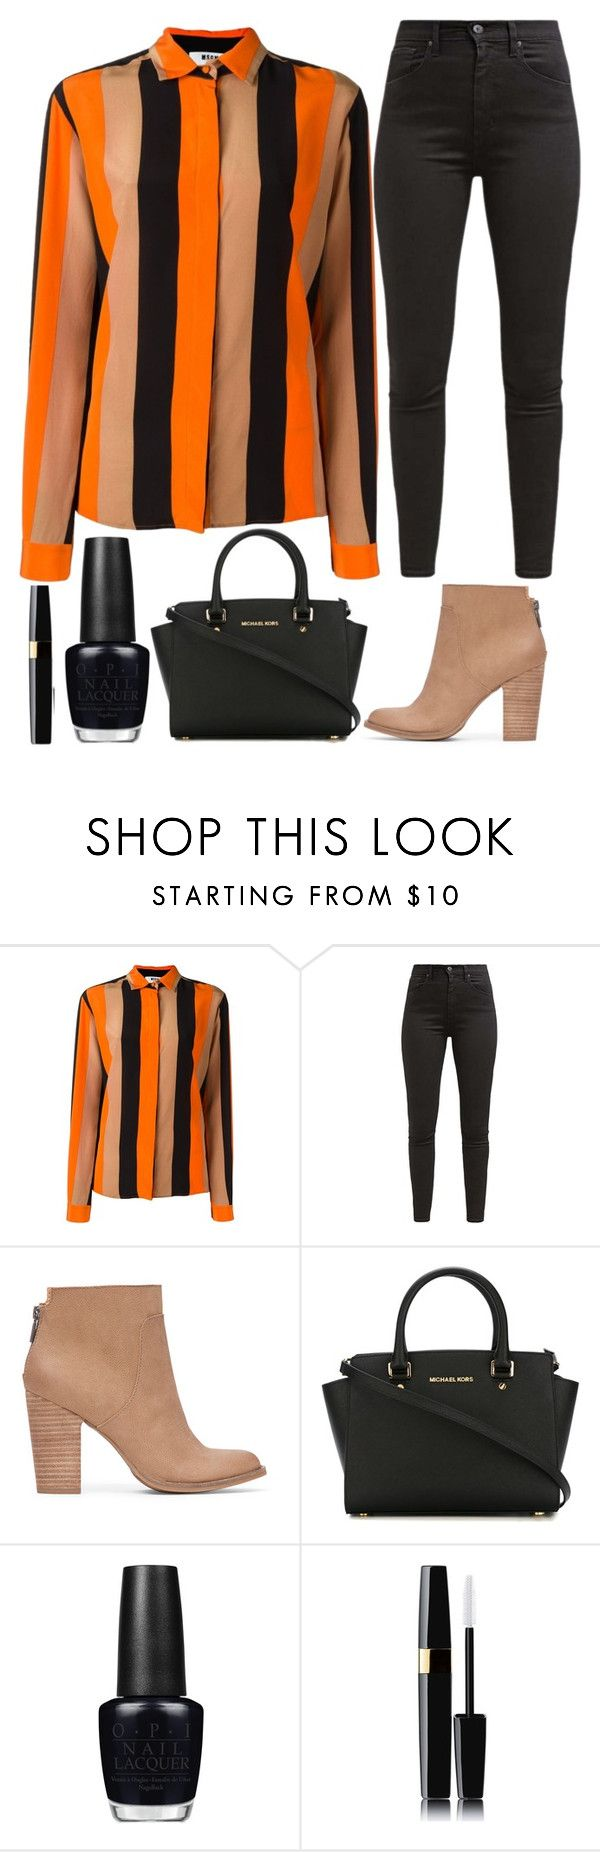 """""""coffee date"""" by j-n-a ❤ liked on Polyvore featuring MSGM, Levi's, Lucky Brand, MICHAEL Michael Kors, OPI and Chanel"""